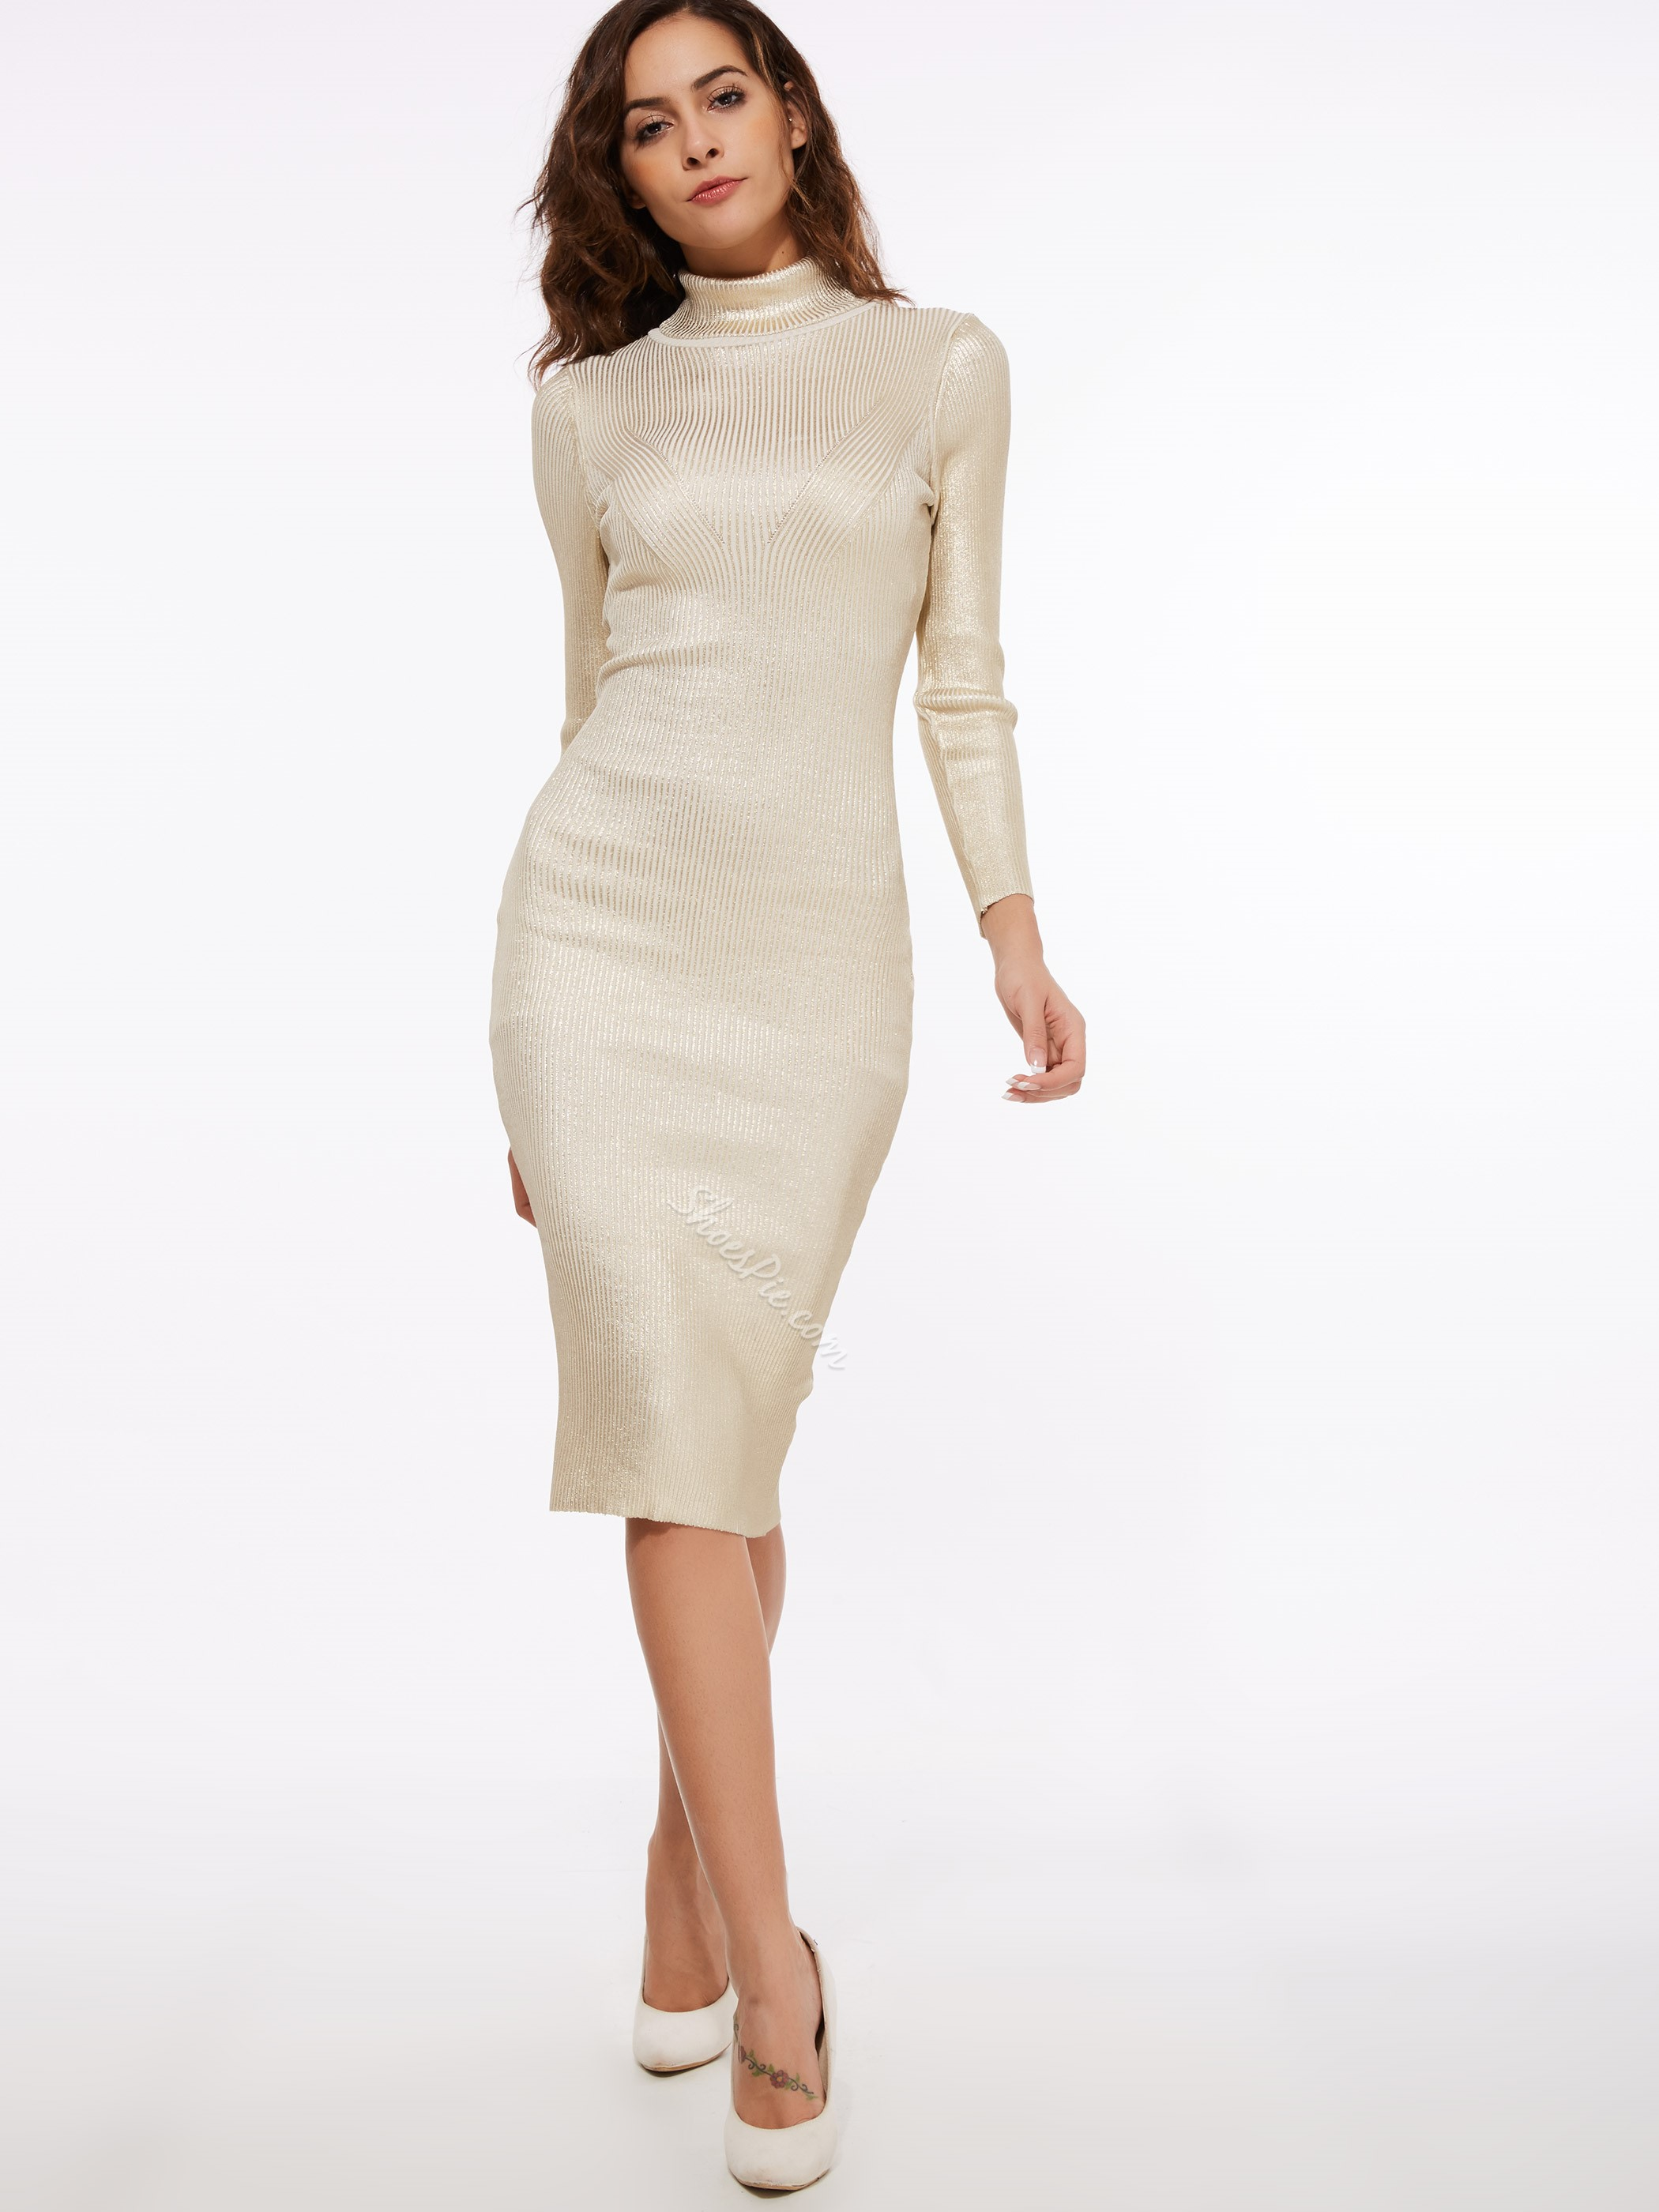 Mid-Calf Plain Turtleneck Sweater Dress